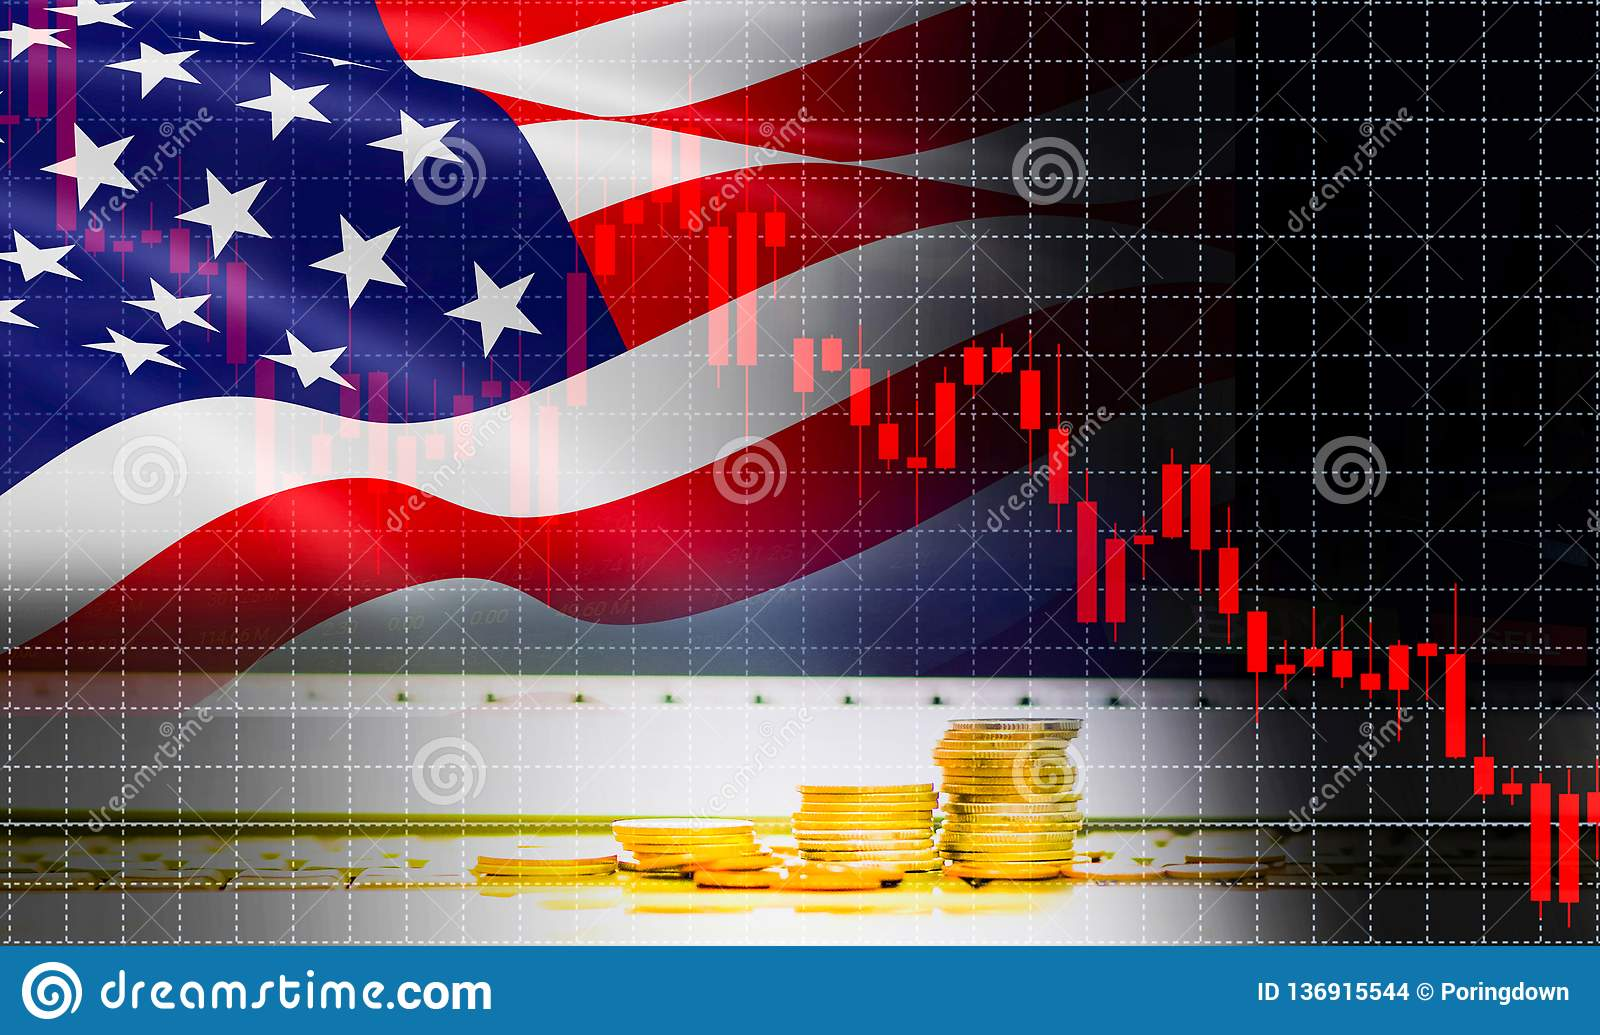 USA America flag candlestick graph background Stock market exchange analysis / indicator of changes graph chart business finance